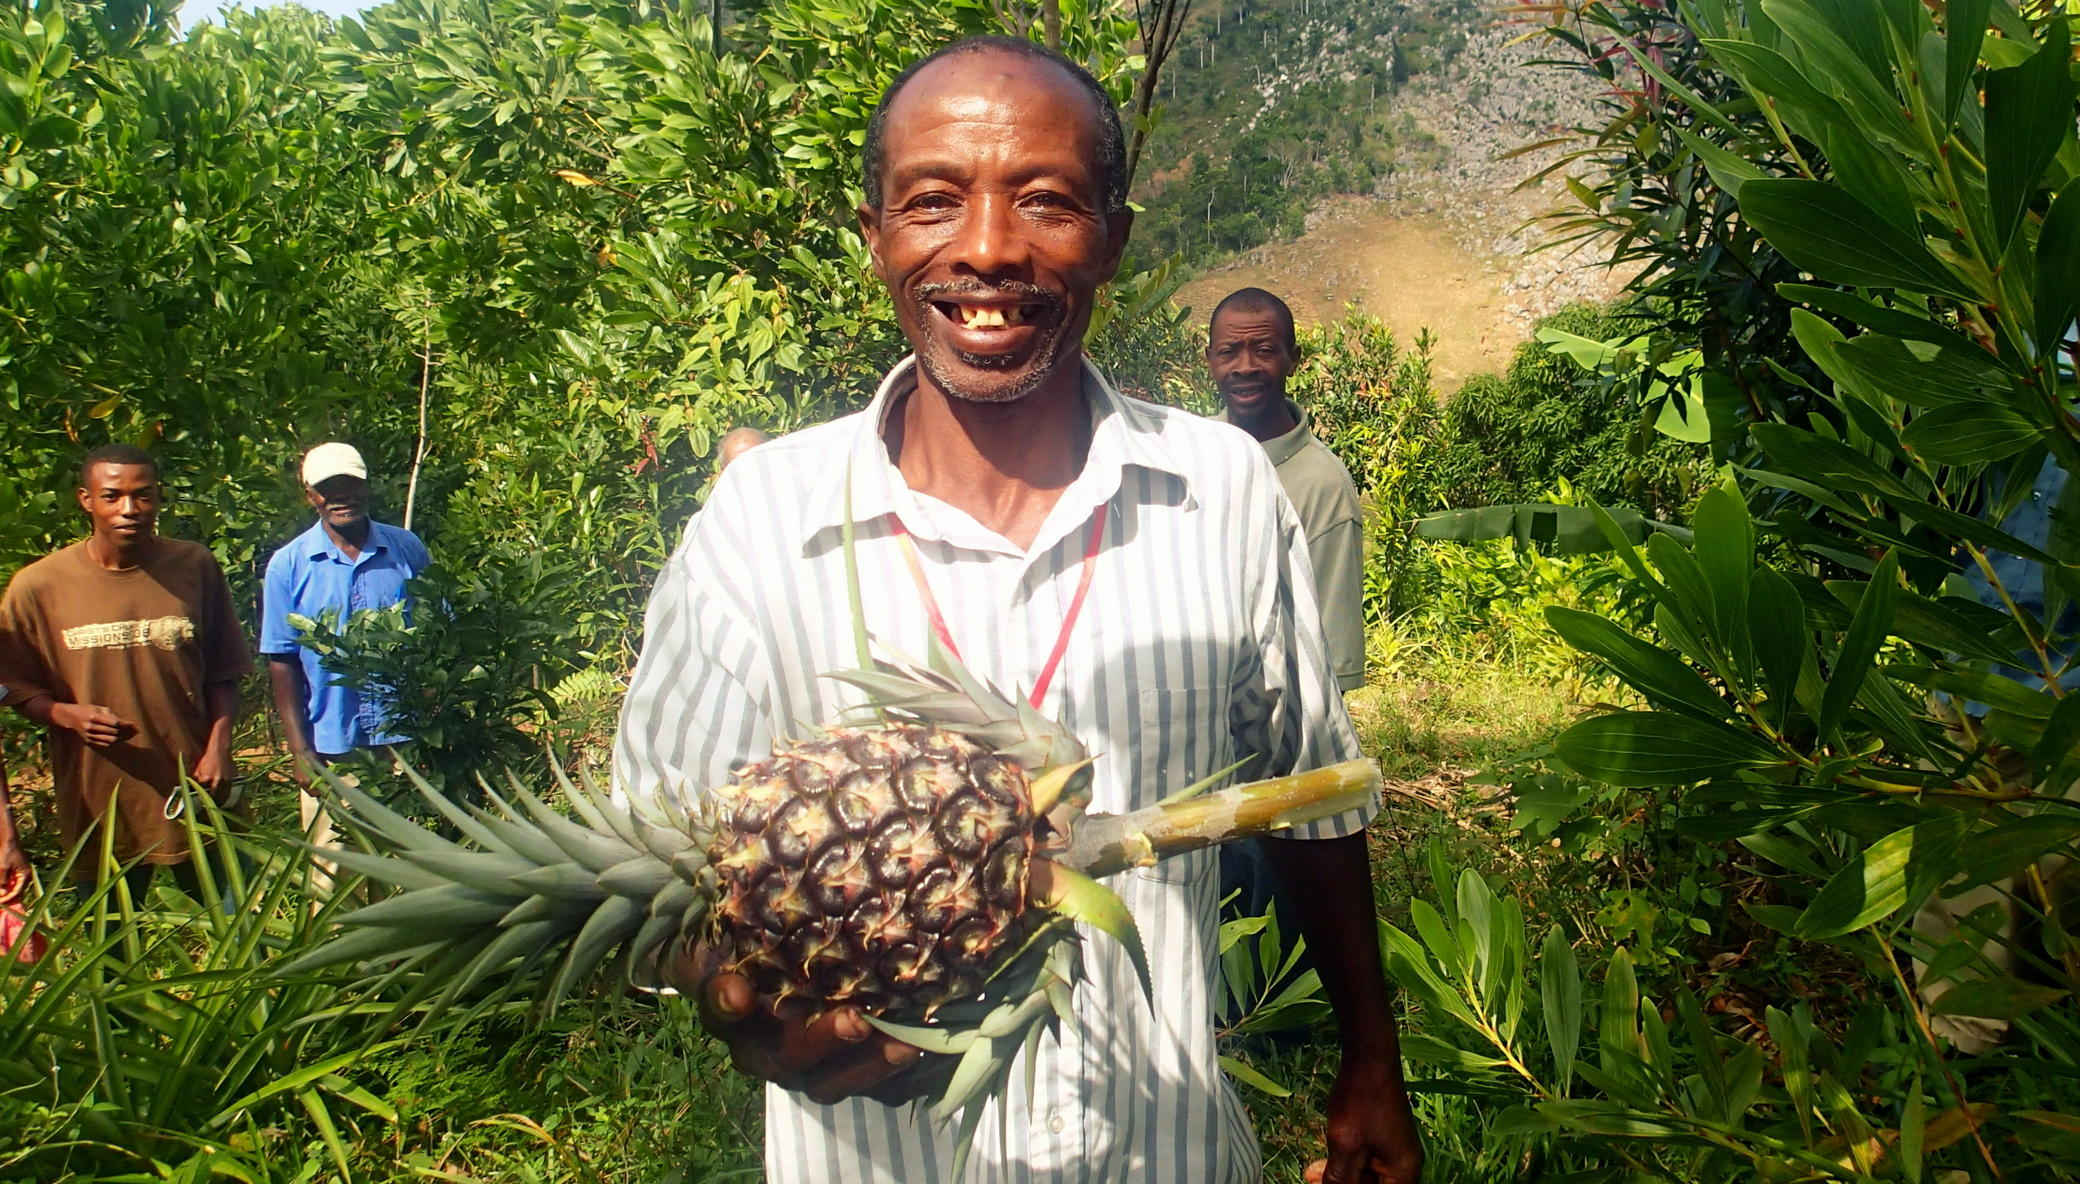 Help Families Grow their Own Food in Rural Haiti